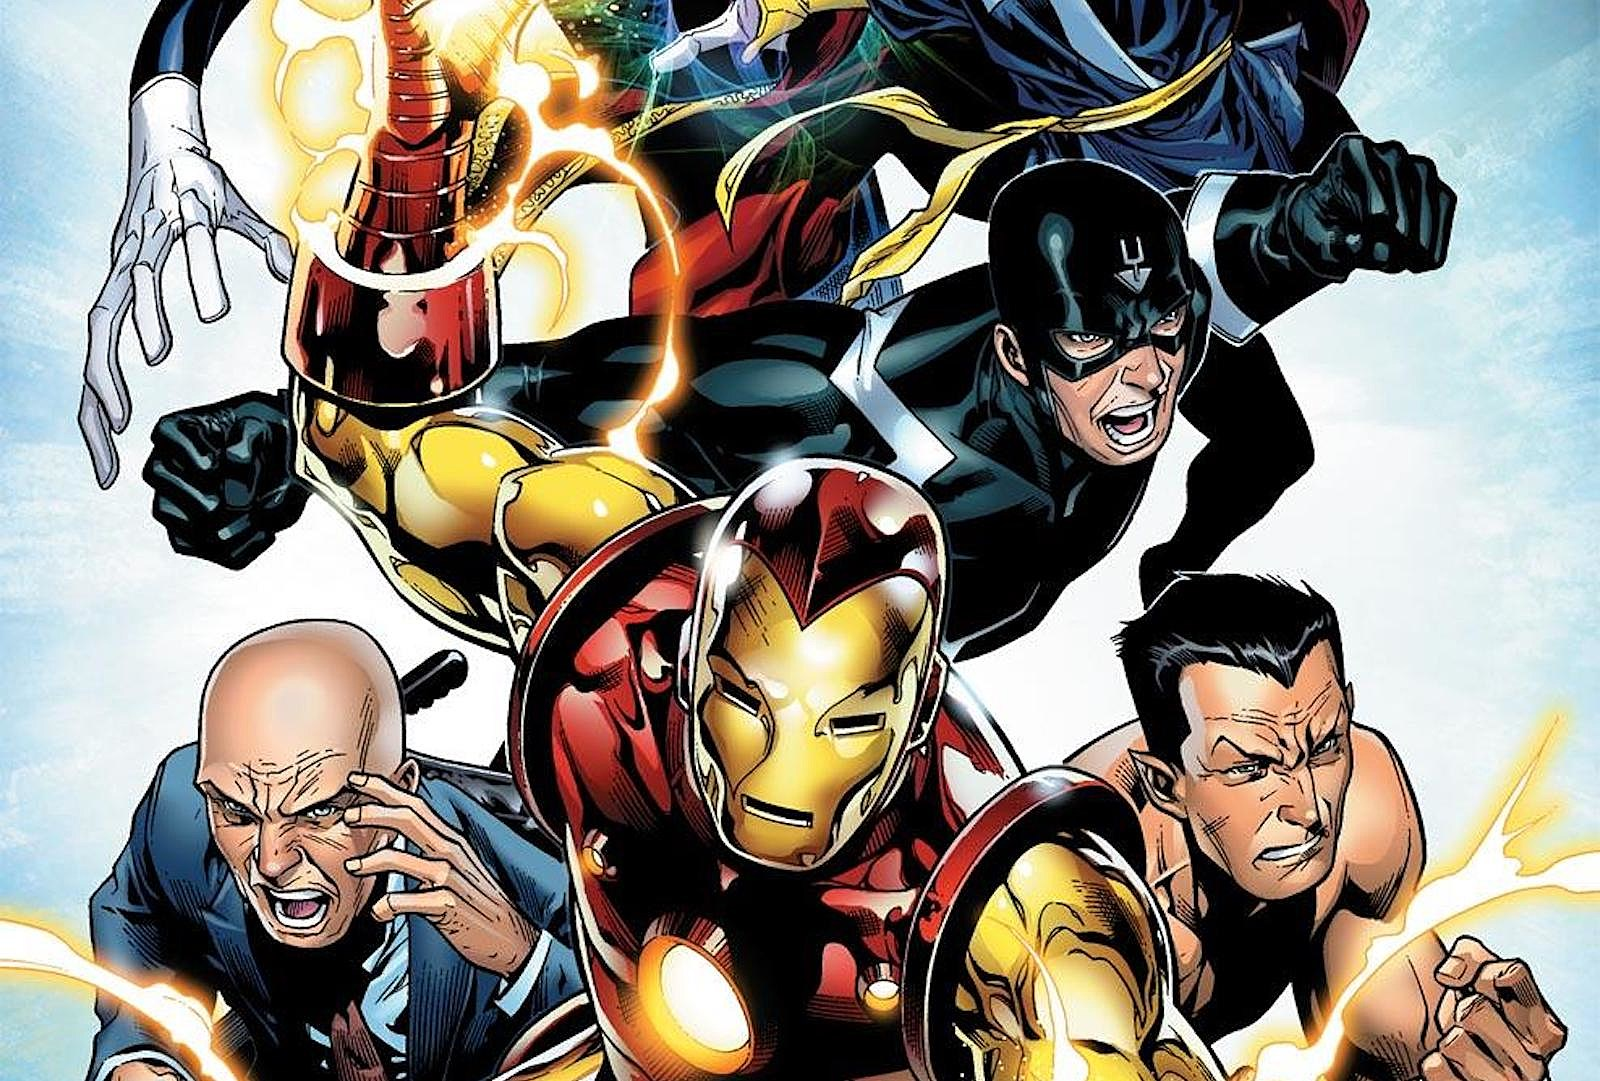 How the Illuminati Could Join the Marvel Cinematic Universe